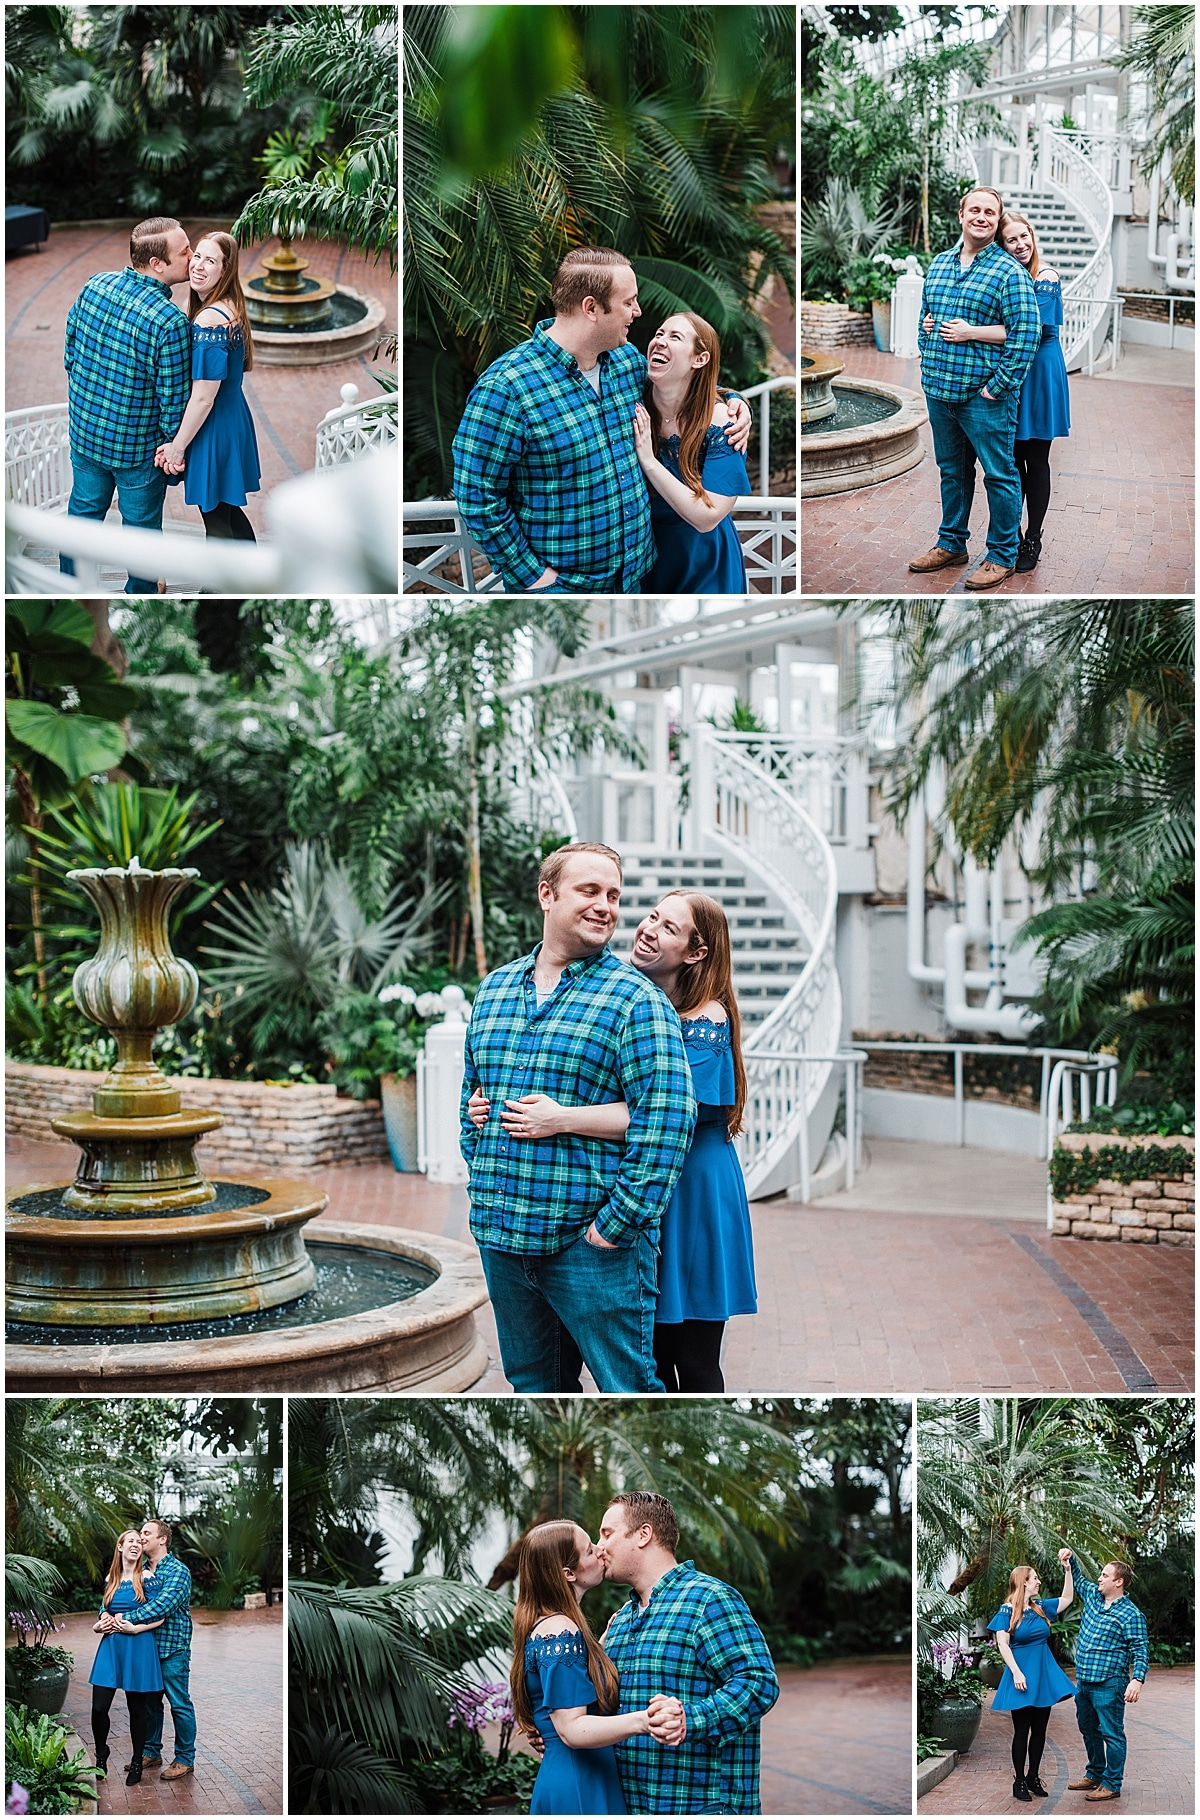 Franklin_park_conservatory_wedding_columbus ohio